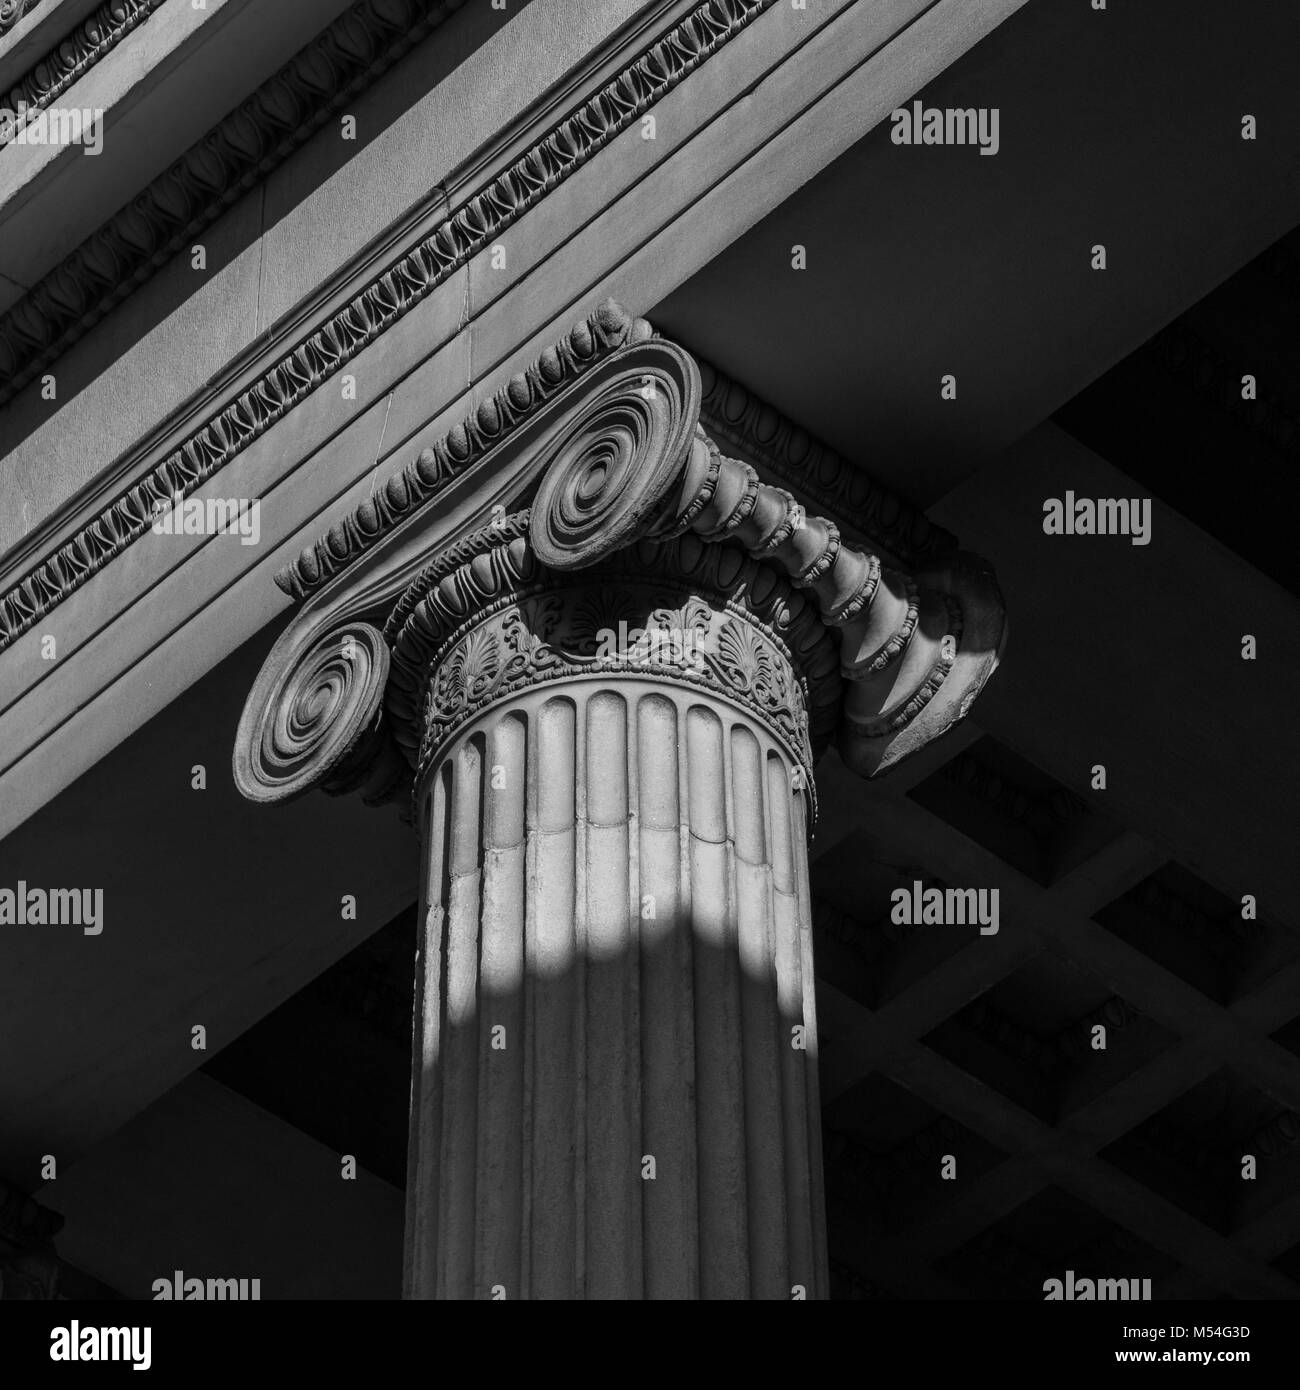 Close-up shot of a line of Greek-style columns. - Stock Image